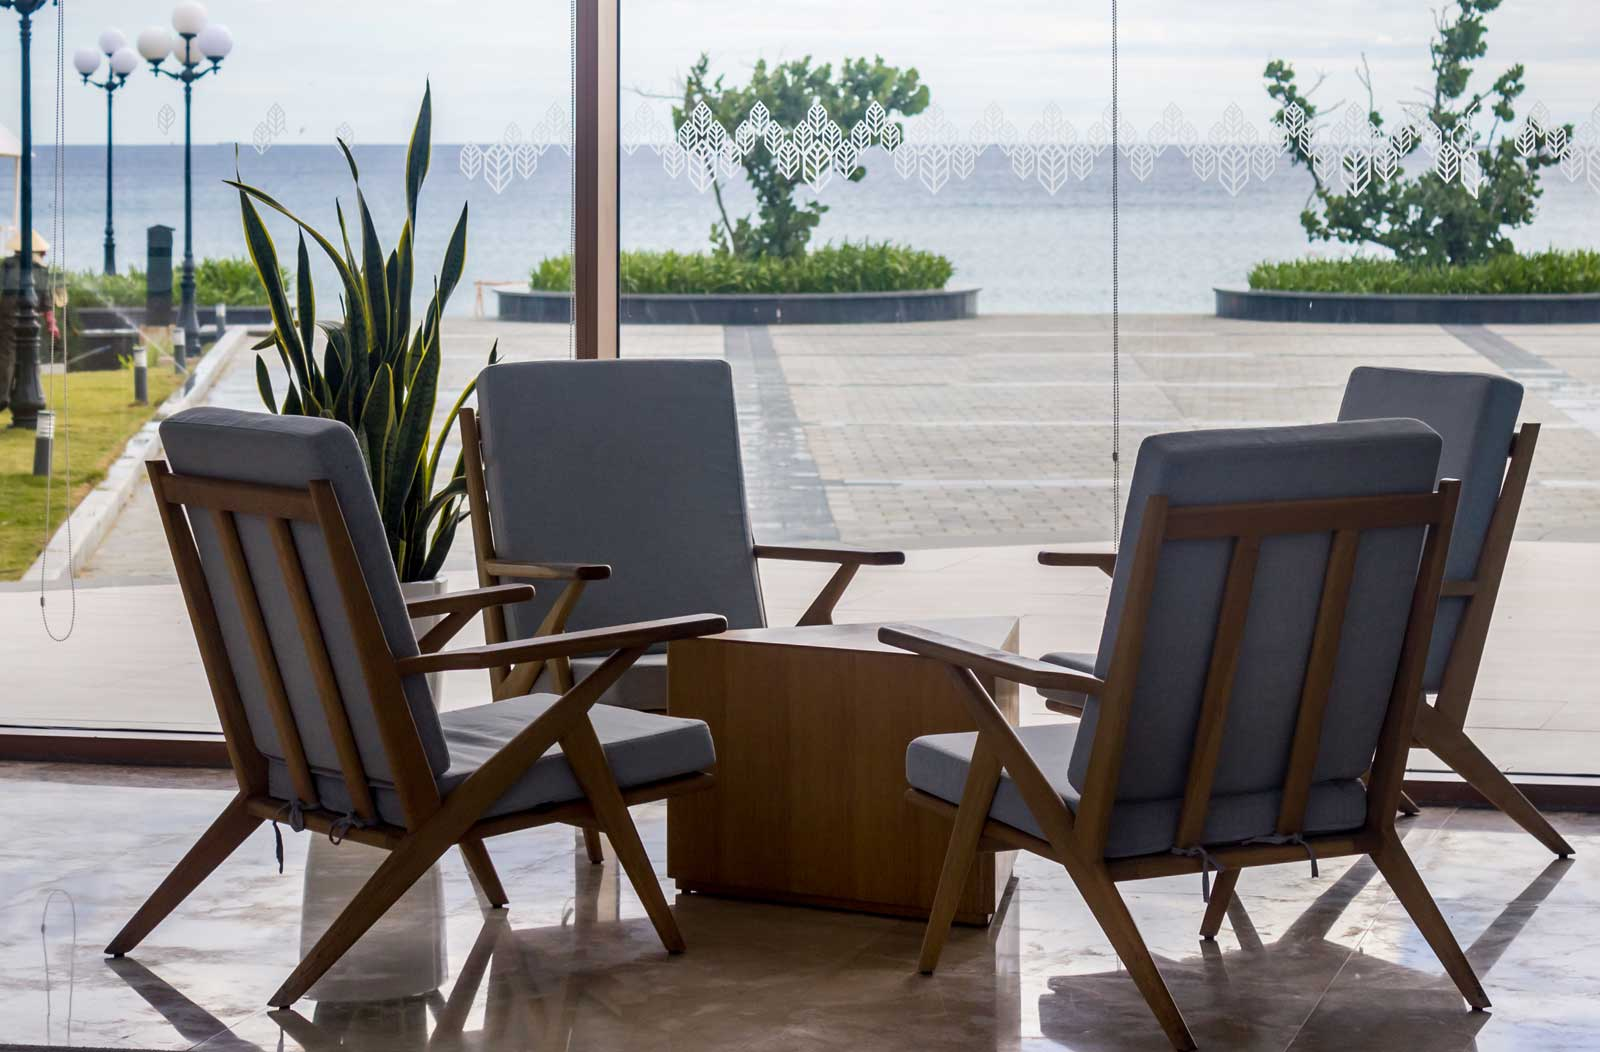 four chairs in lobby of hotel overlooking water